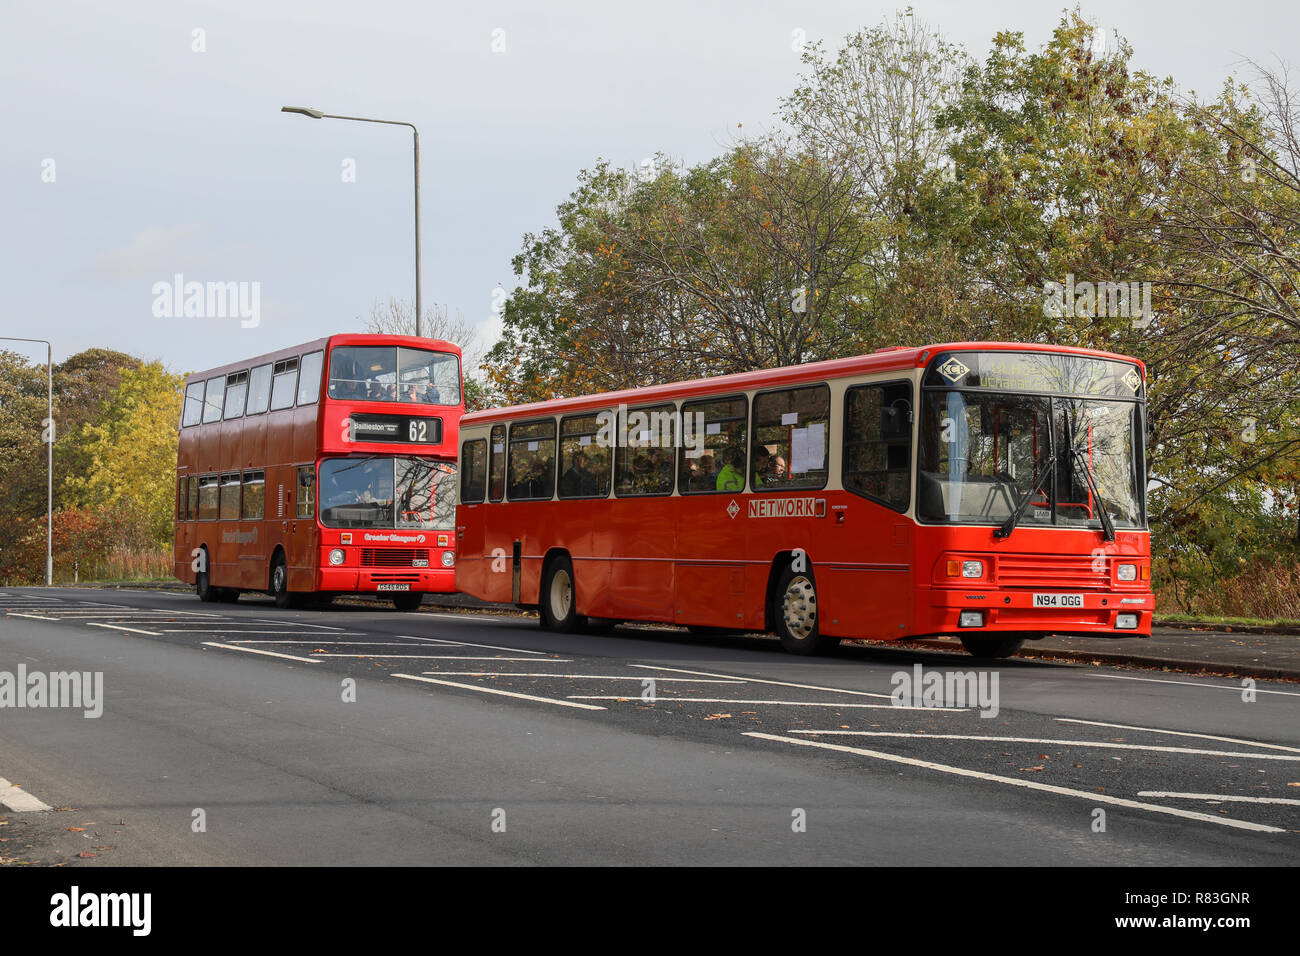 A refurbished single decker  red Volvo B10 bus with Kelvin Scottish Livery, SV494 / N94 OGG on Cumbernauld Road, Glasgow - Stock Image